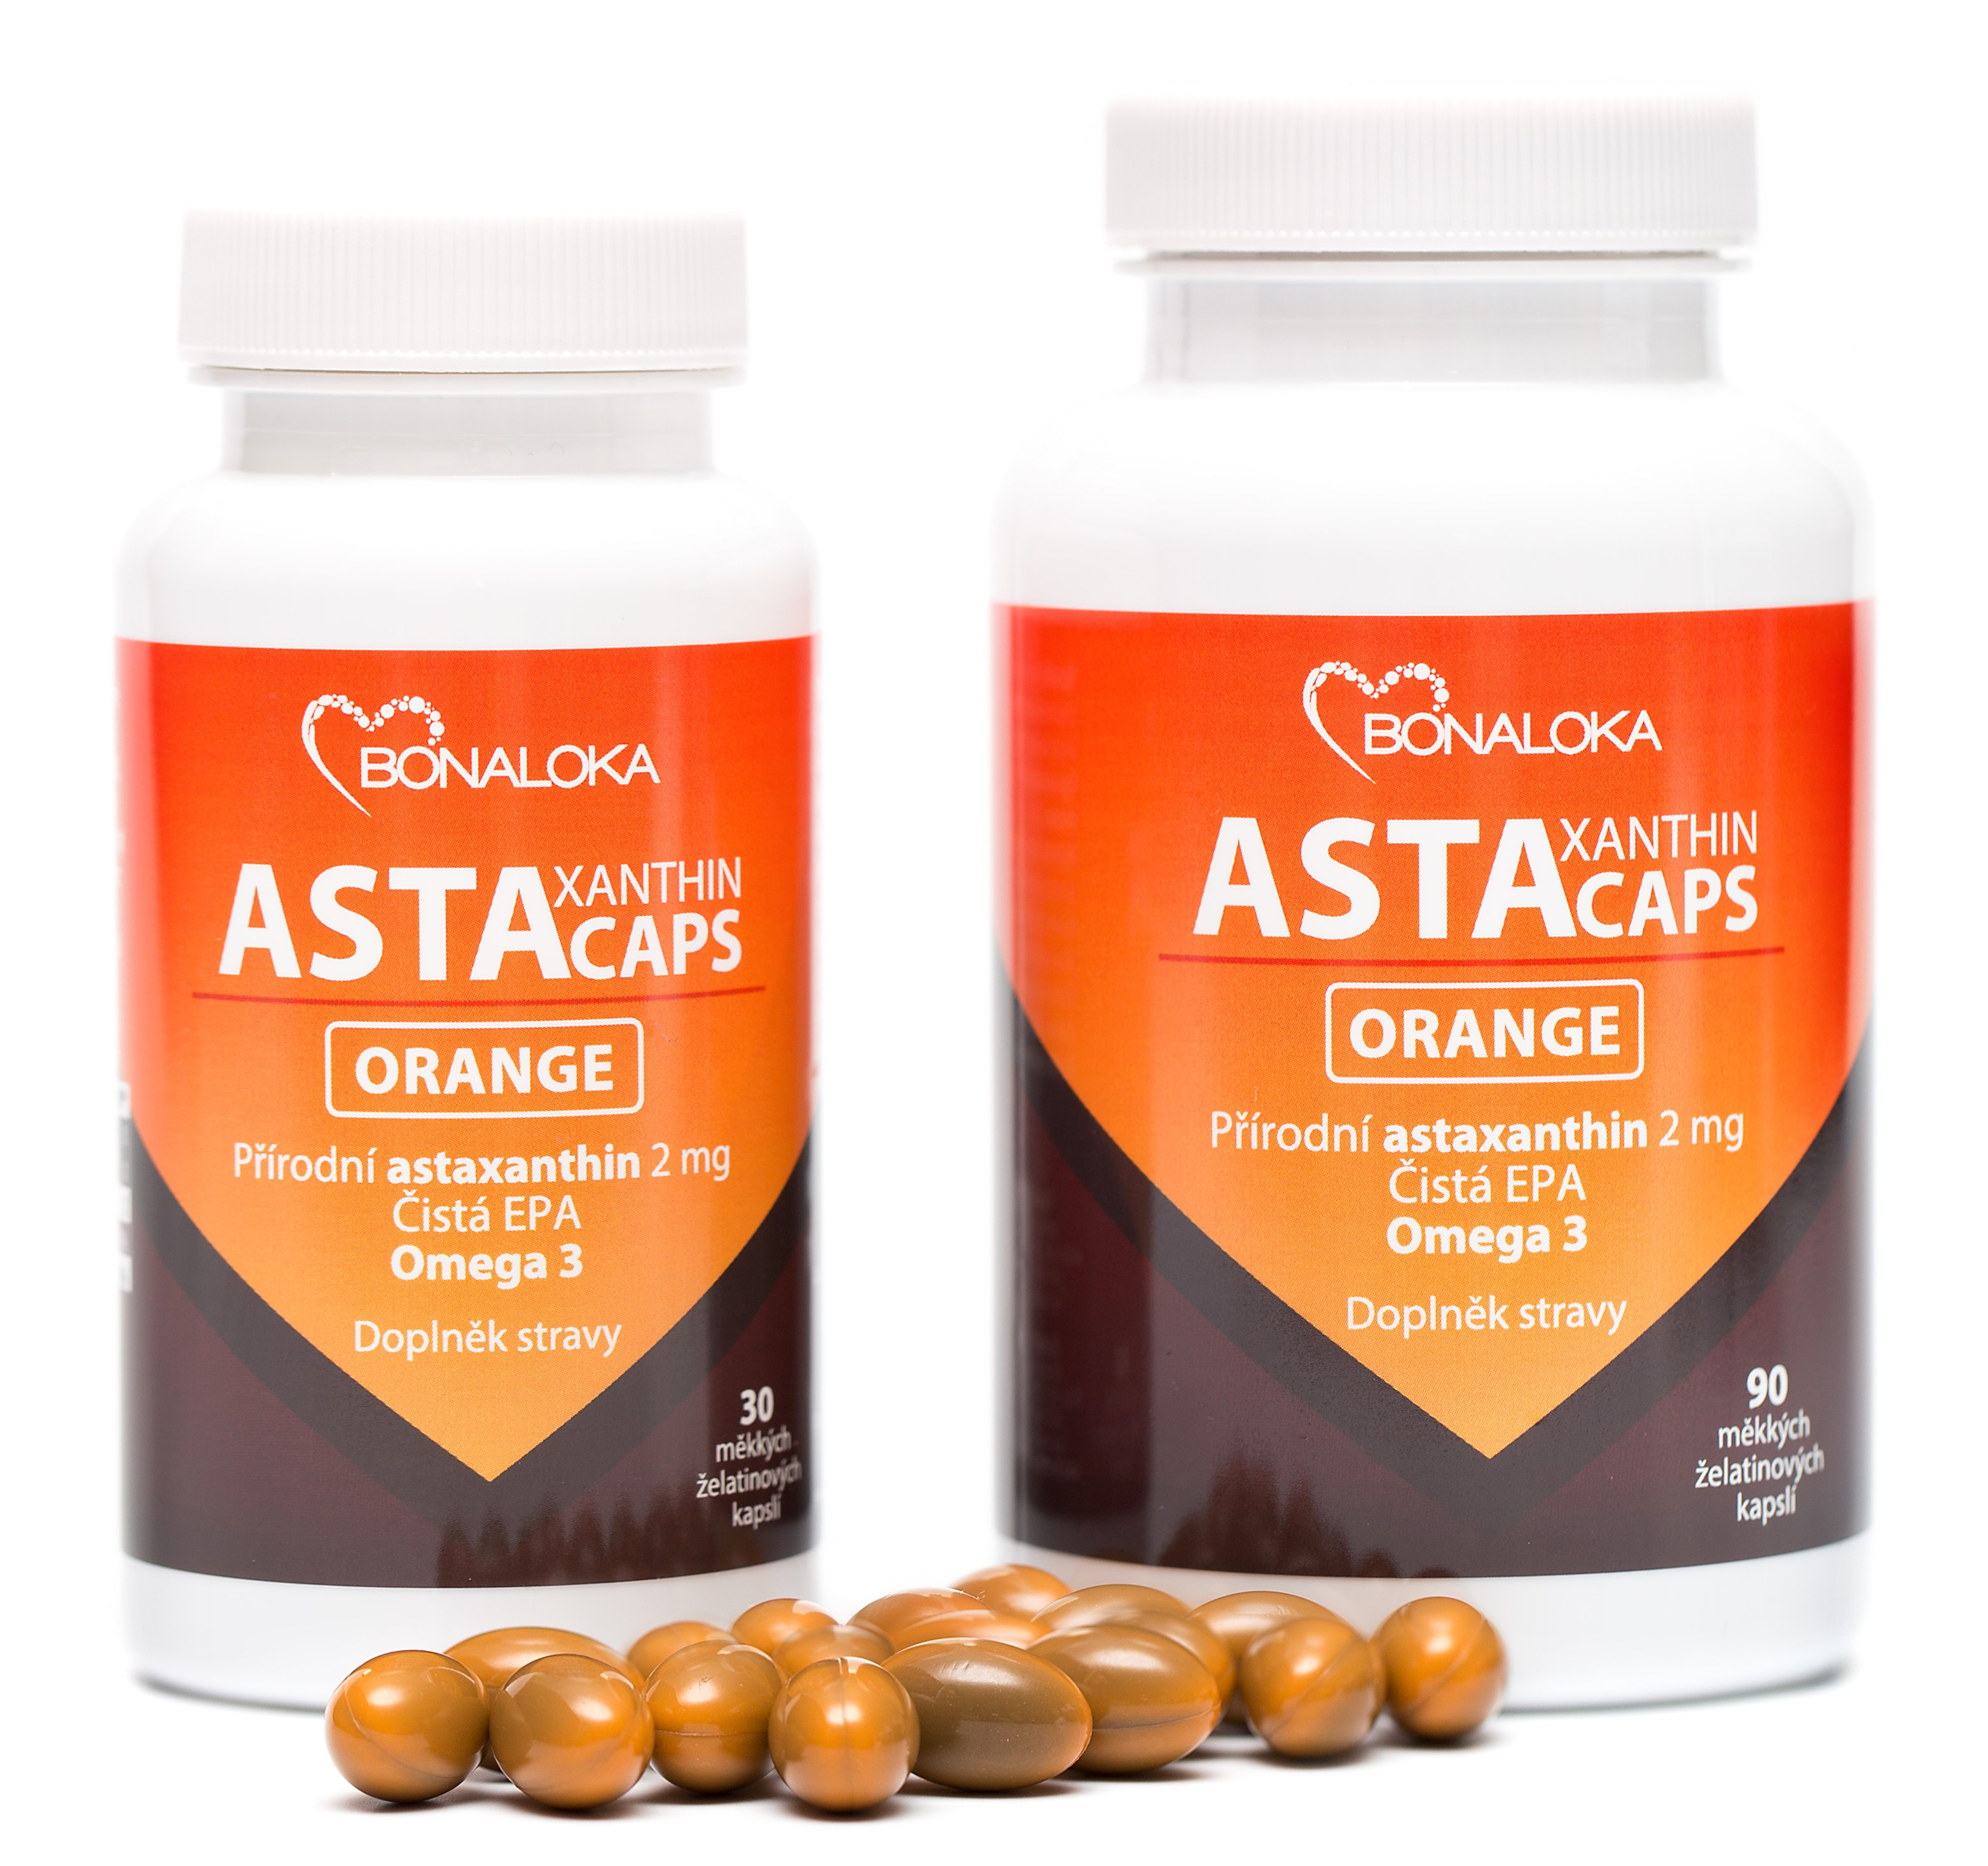 Bonaloka - Astaxanthin Caps ORANGE